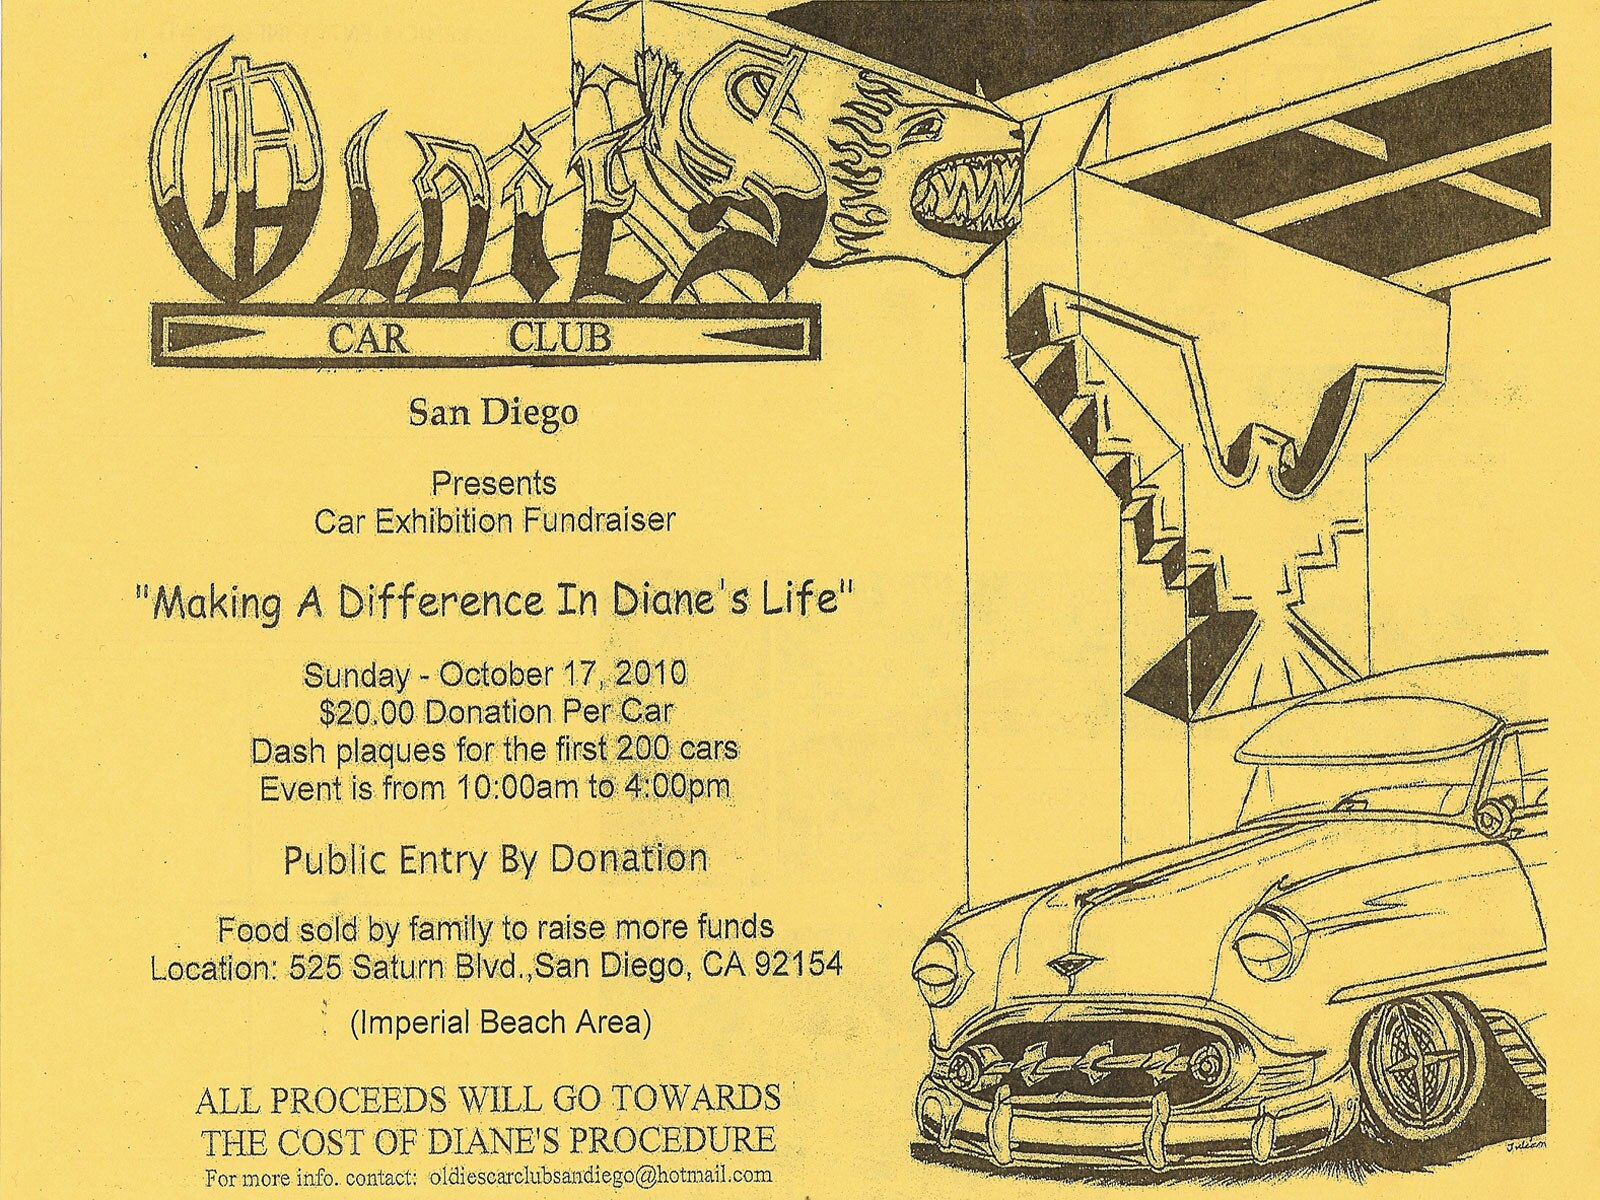 lrmp_1009_01_o-oldies_car_club_making_a_difference_in_dianes_life-oldies_car_club2